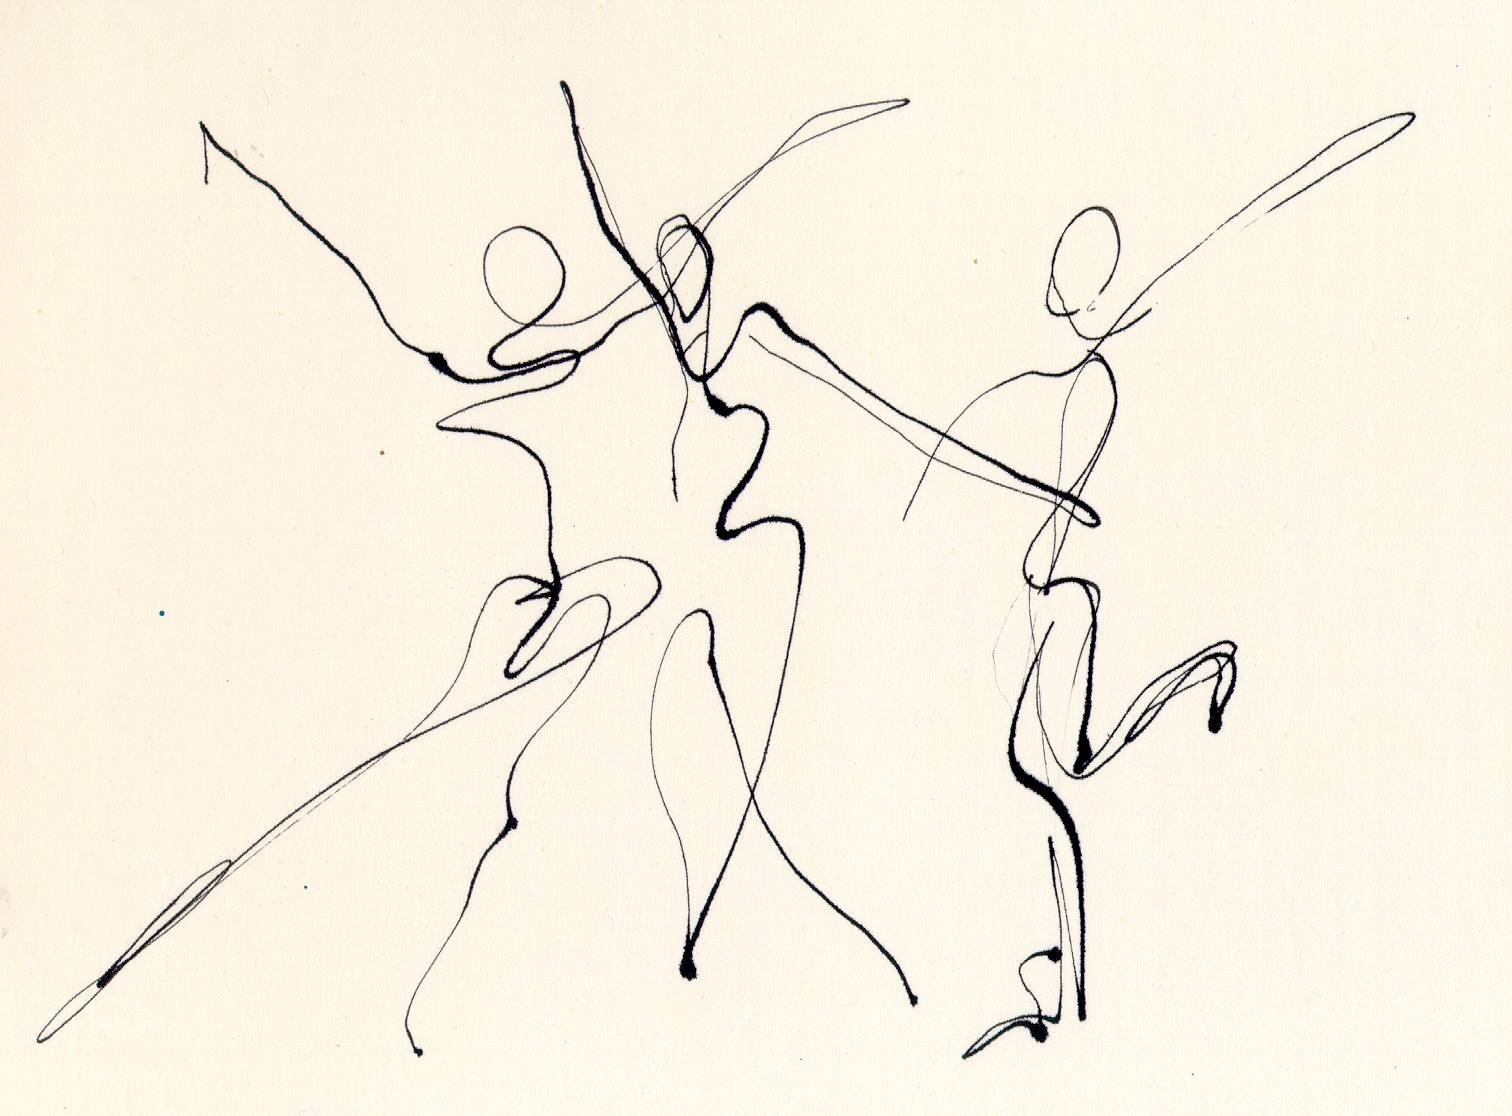 1512x1116 3 Dancers Line Drawing Chris Carter Artist Dip Pen Ink Web Third